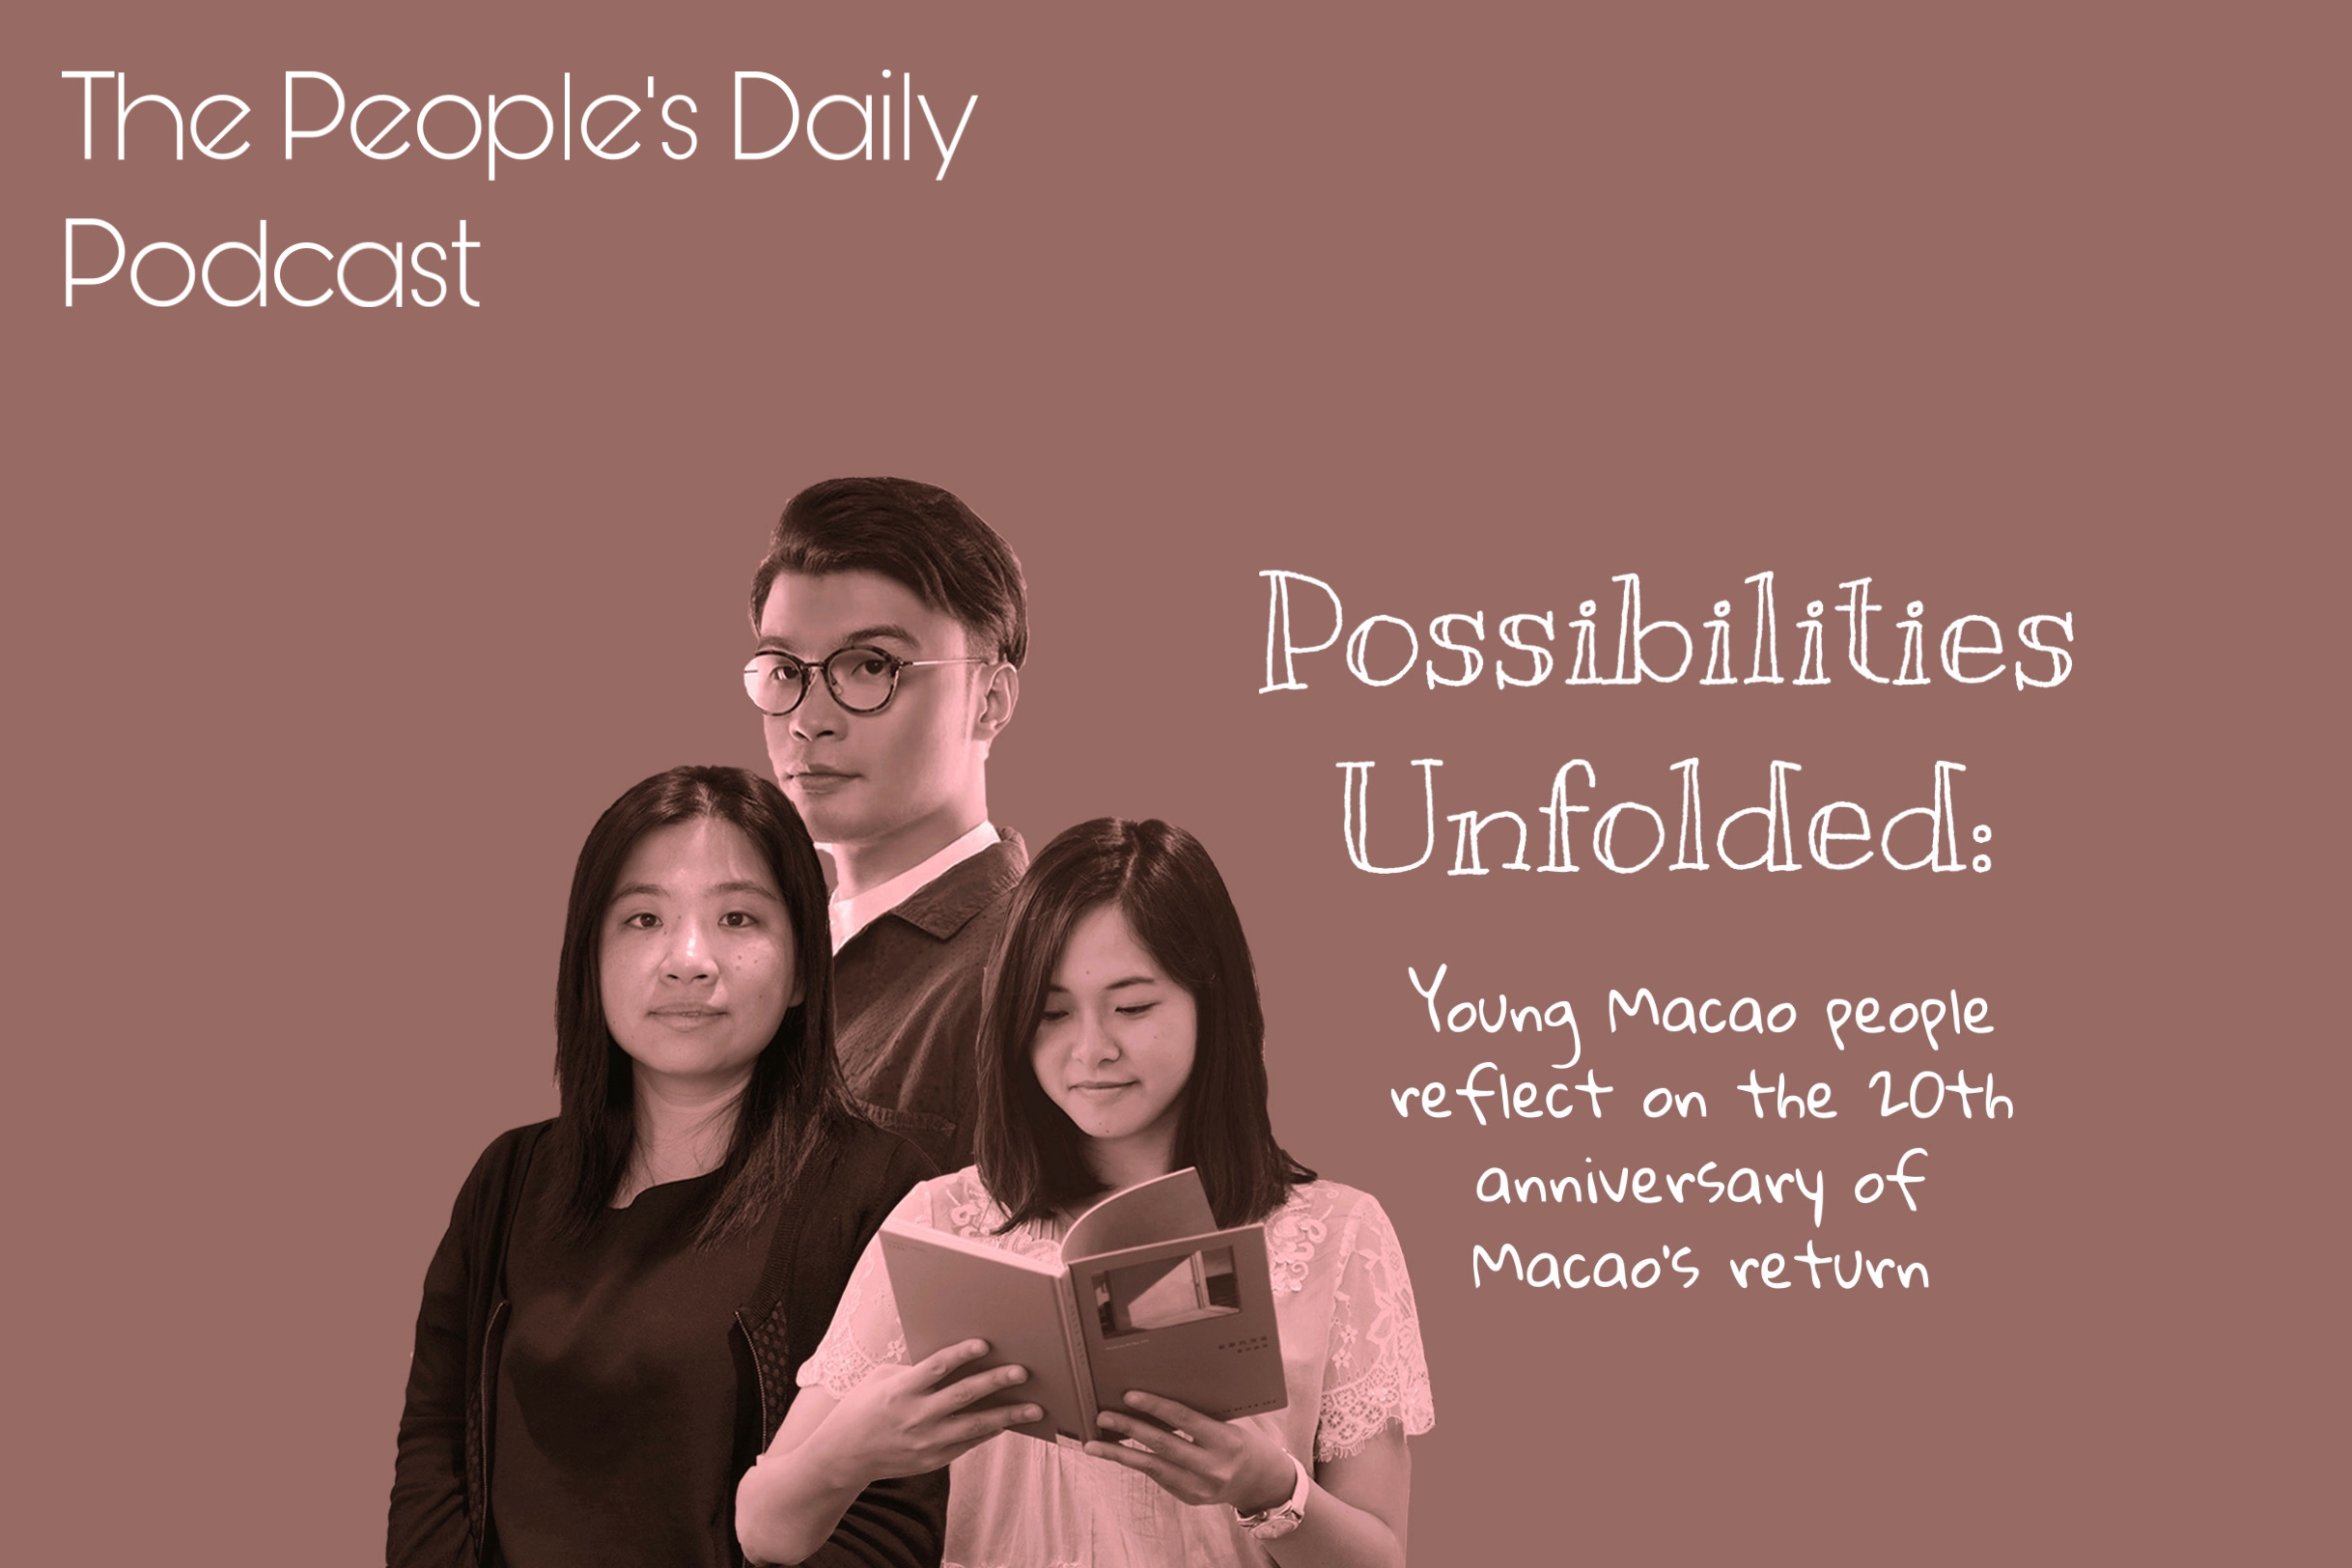 Possibilities unfolded: Young Macao people reflect on the anniversary of Macao's return